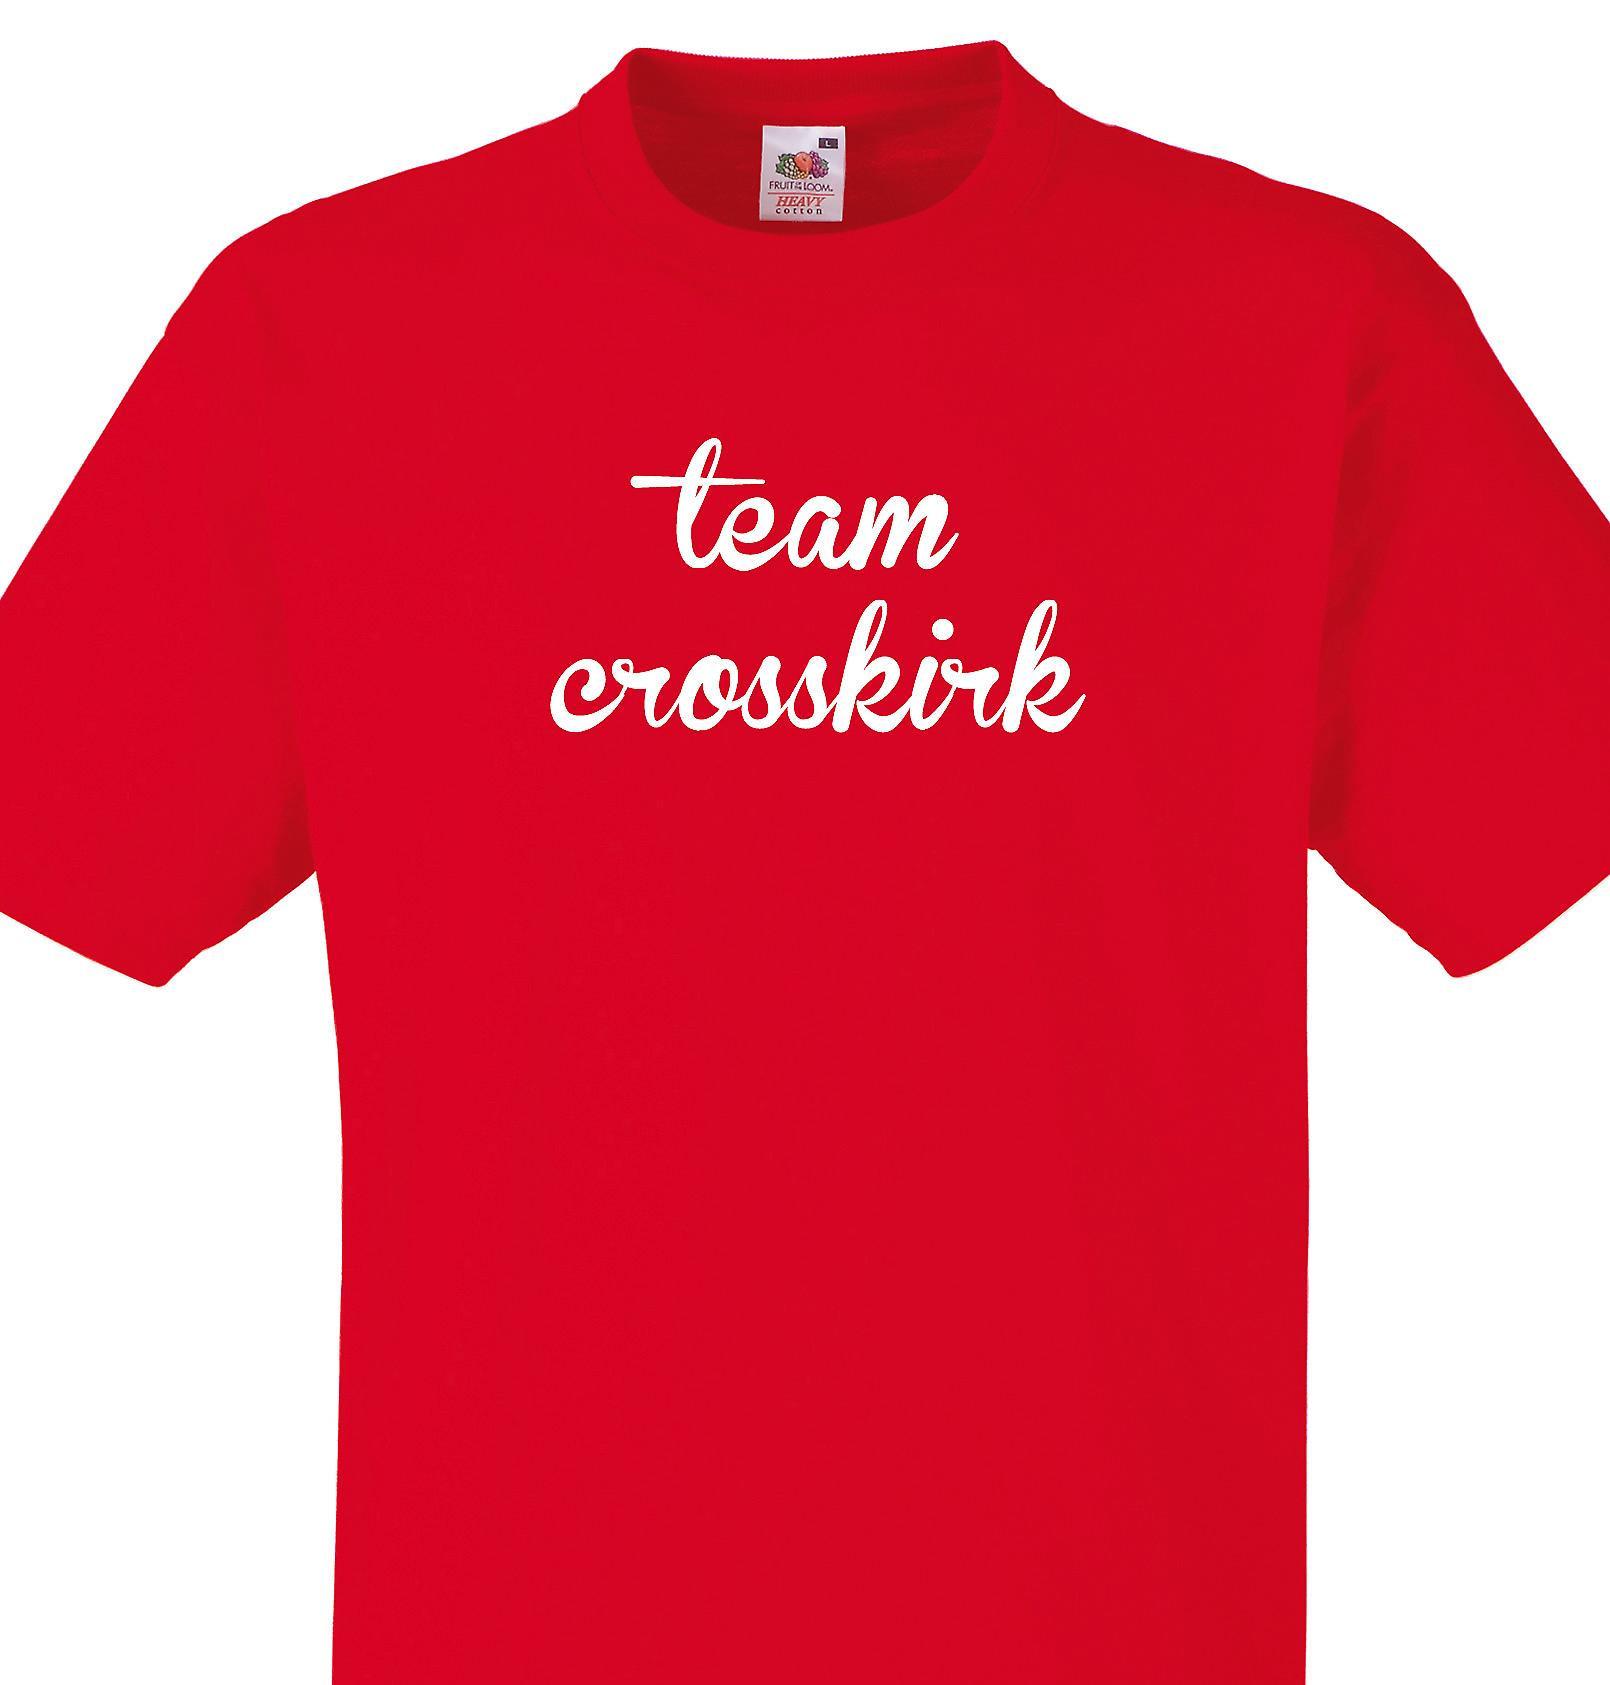 Team Crosskirk Red T shirt